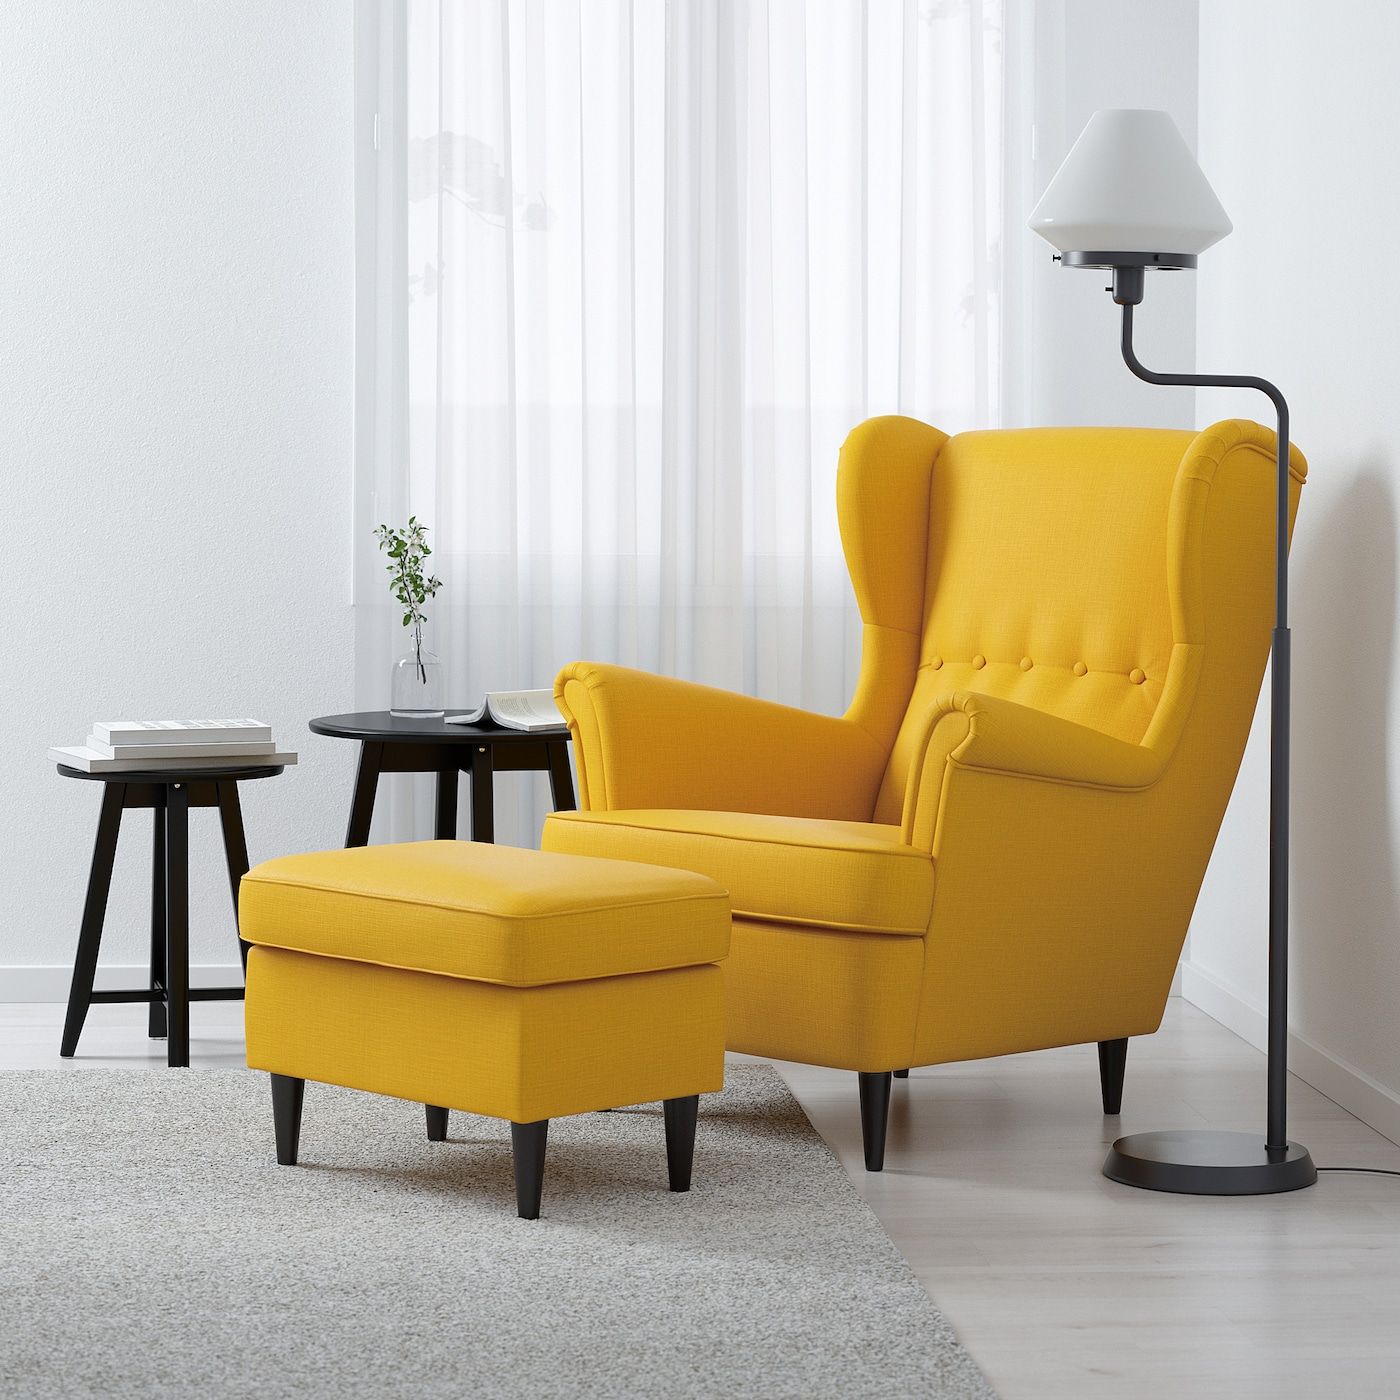 strandmon-wing-chair-skiftebo-yellow__0837297_PE601176_S5.JPG